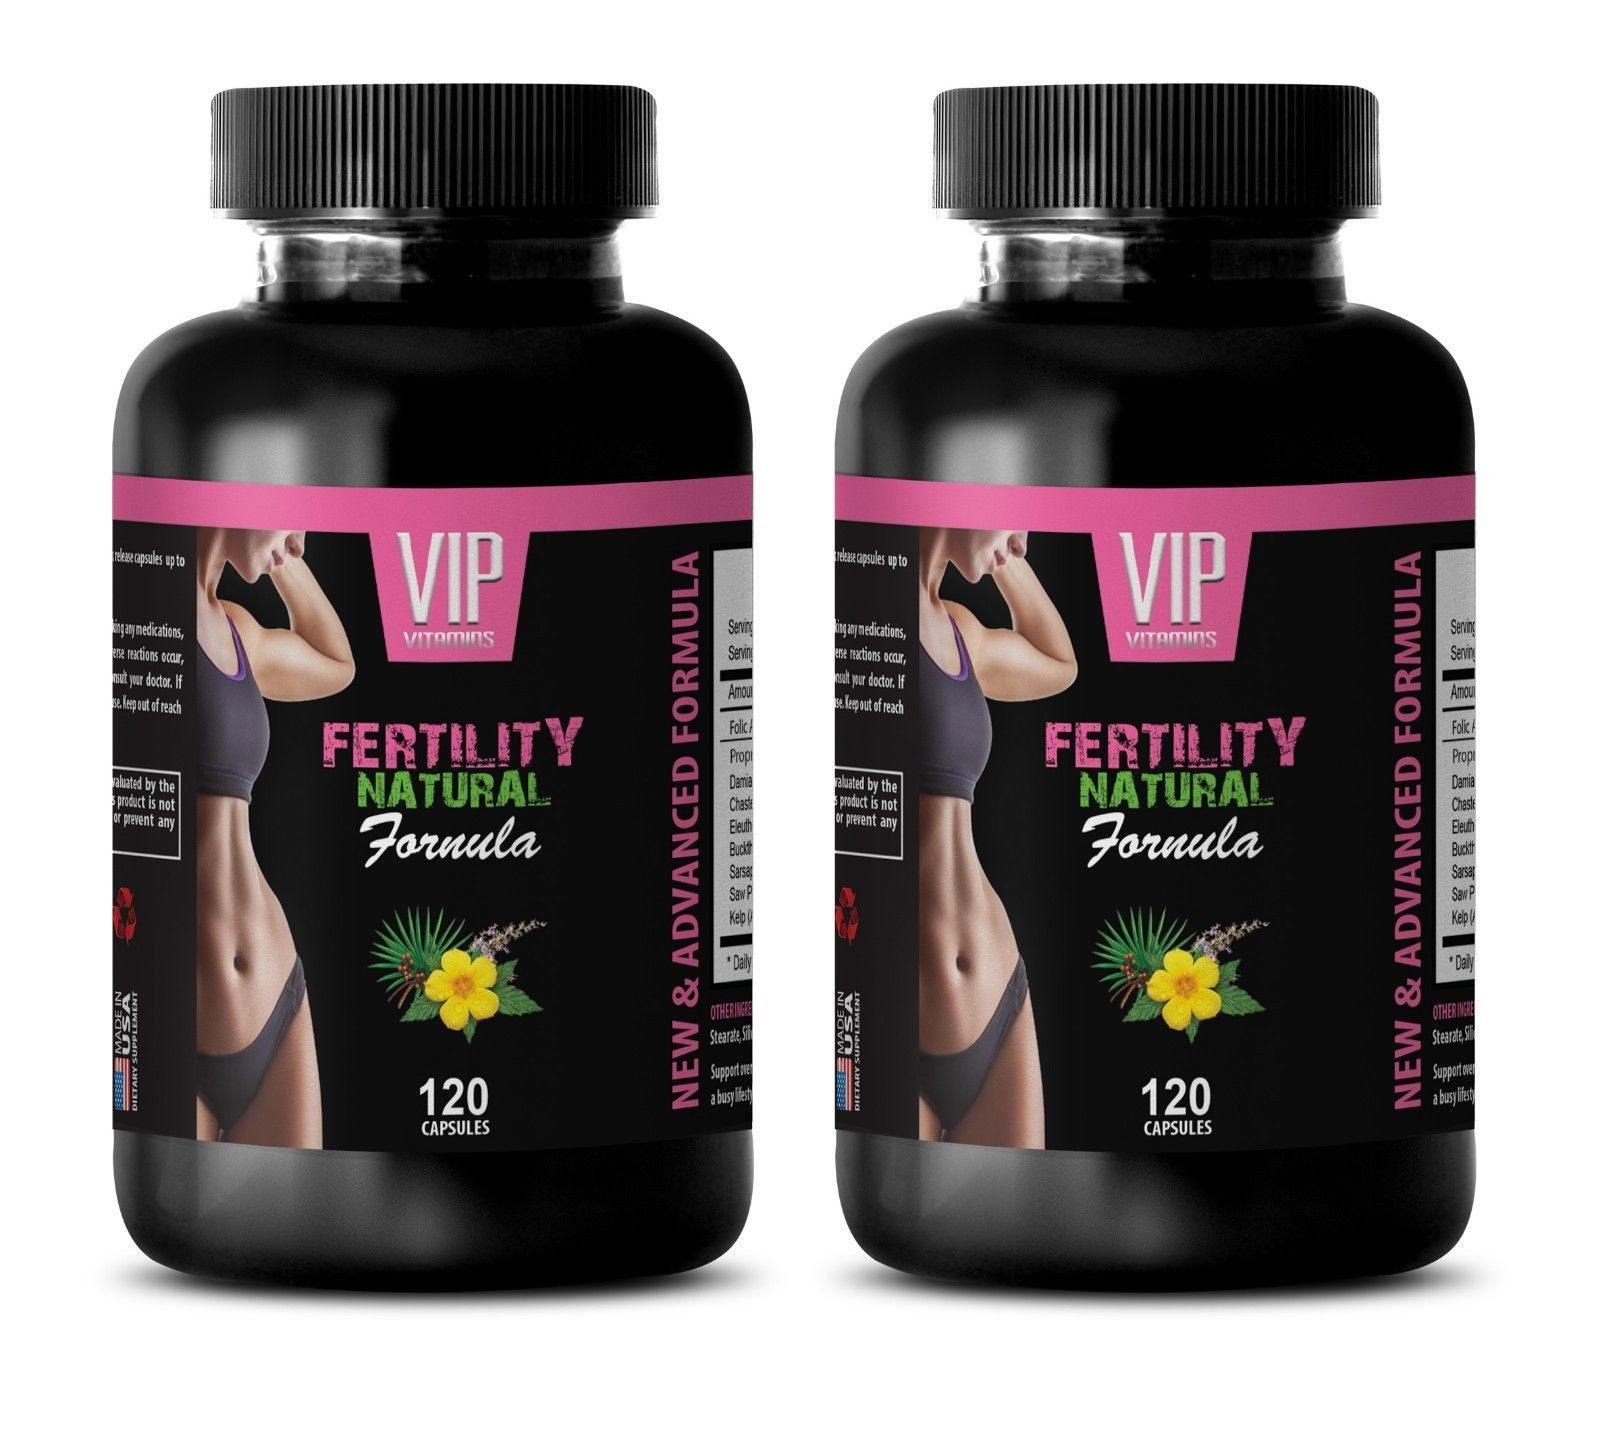 Primary image for wellness -2B FERTILITY NATURAL 240 CAPSULES - saw palmetto bulk supplements